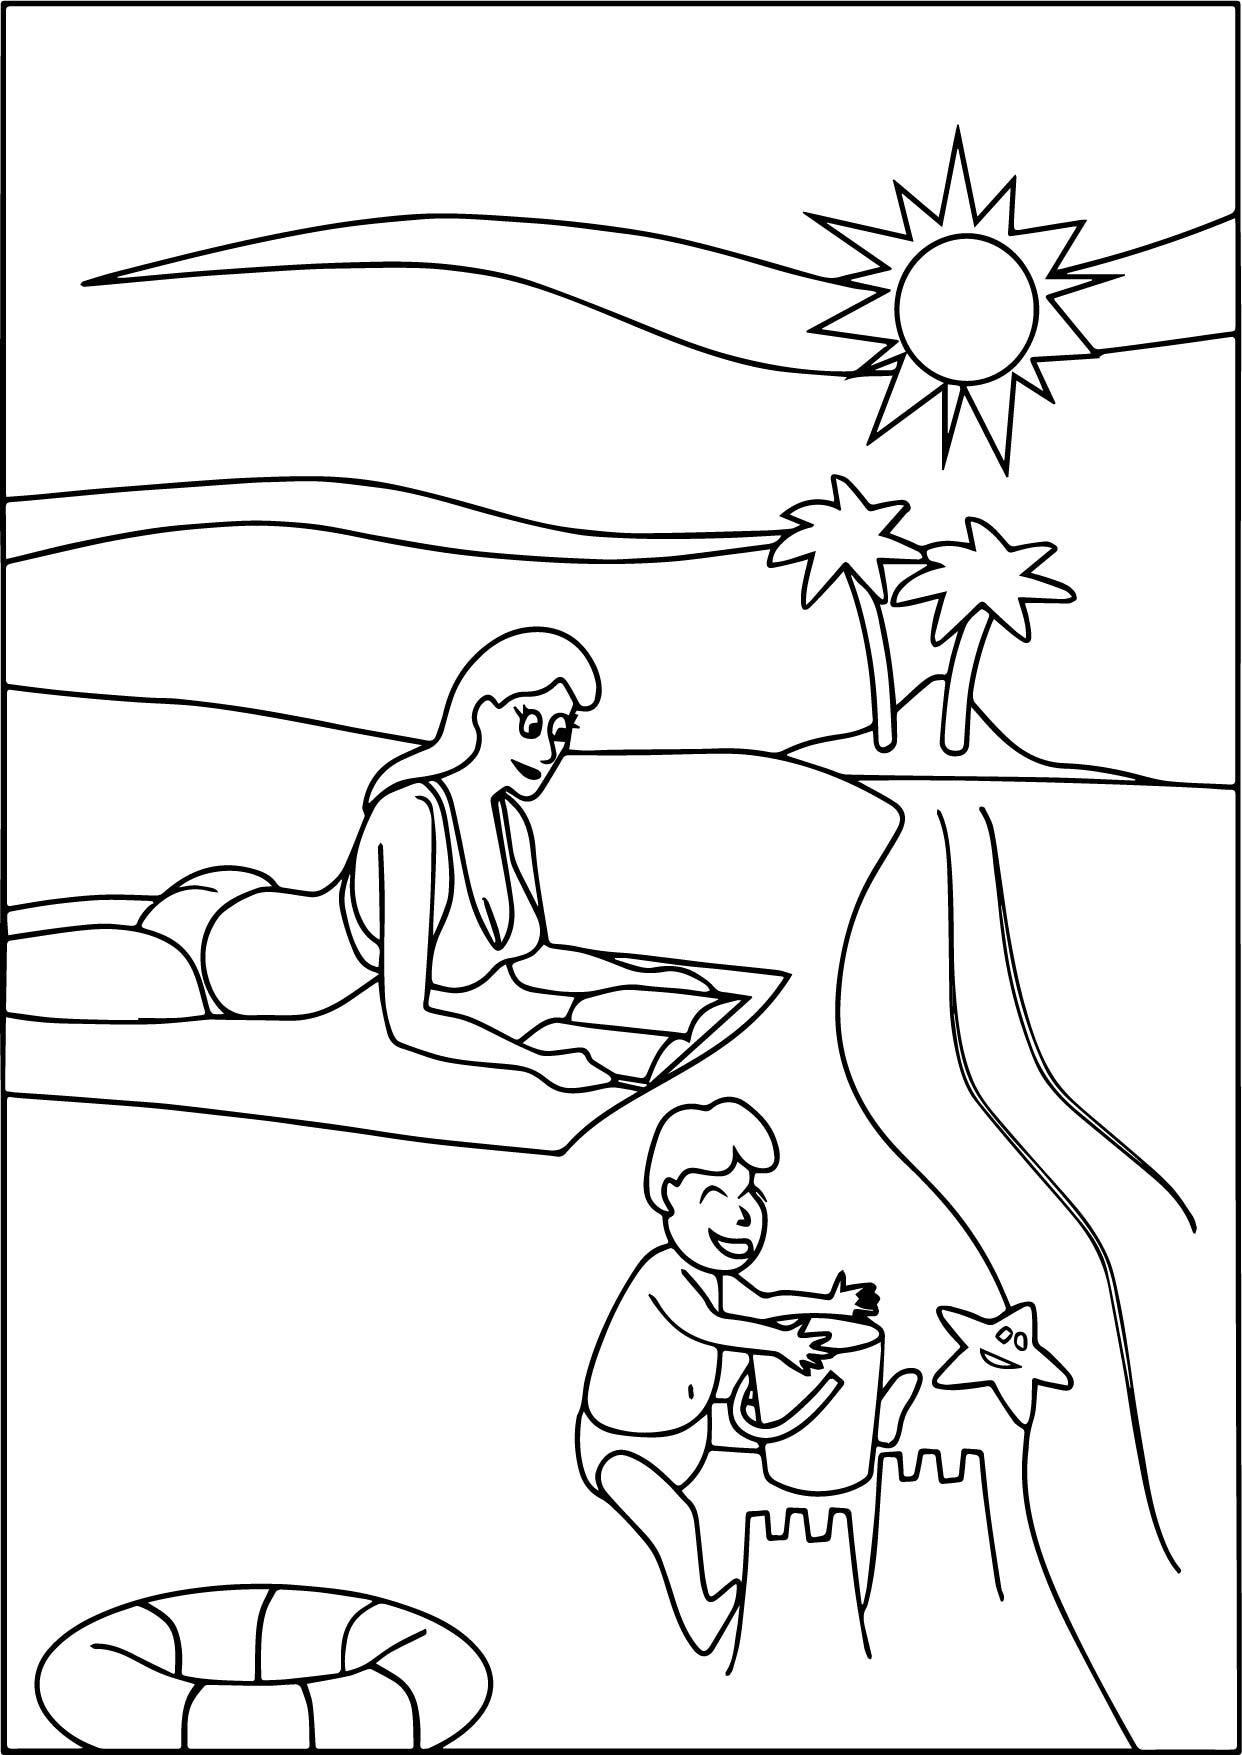 Family beach coloring page for Beach coloring book pages